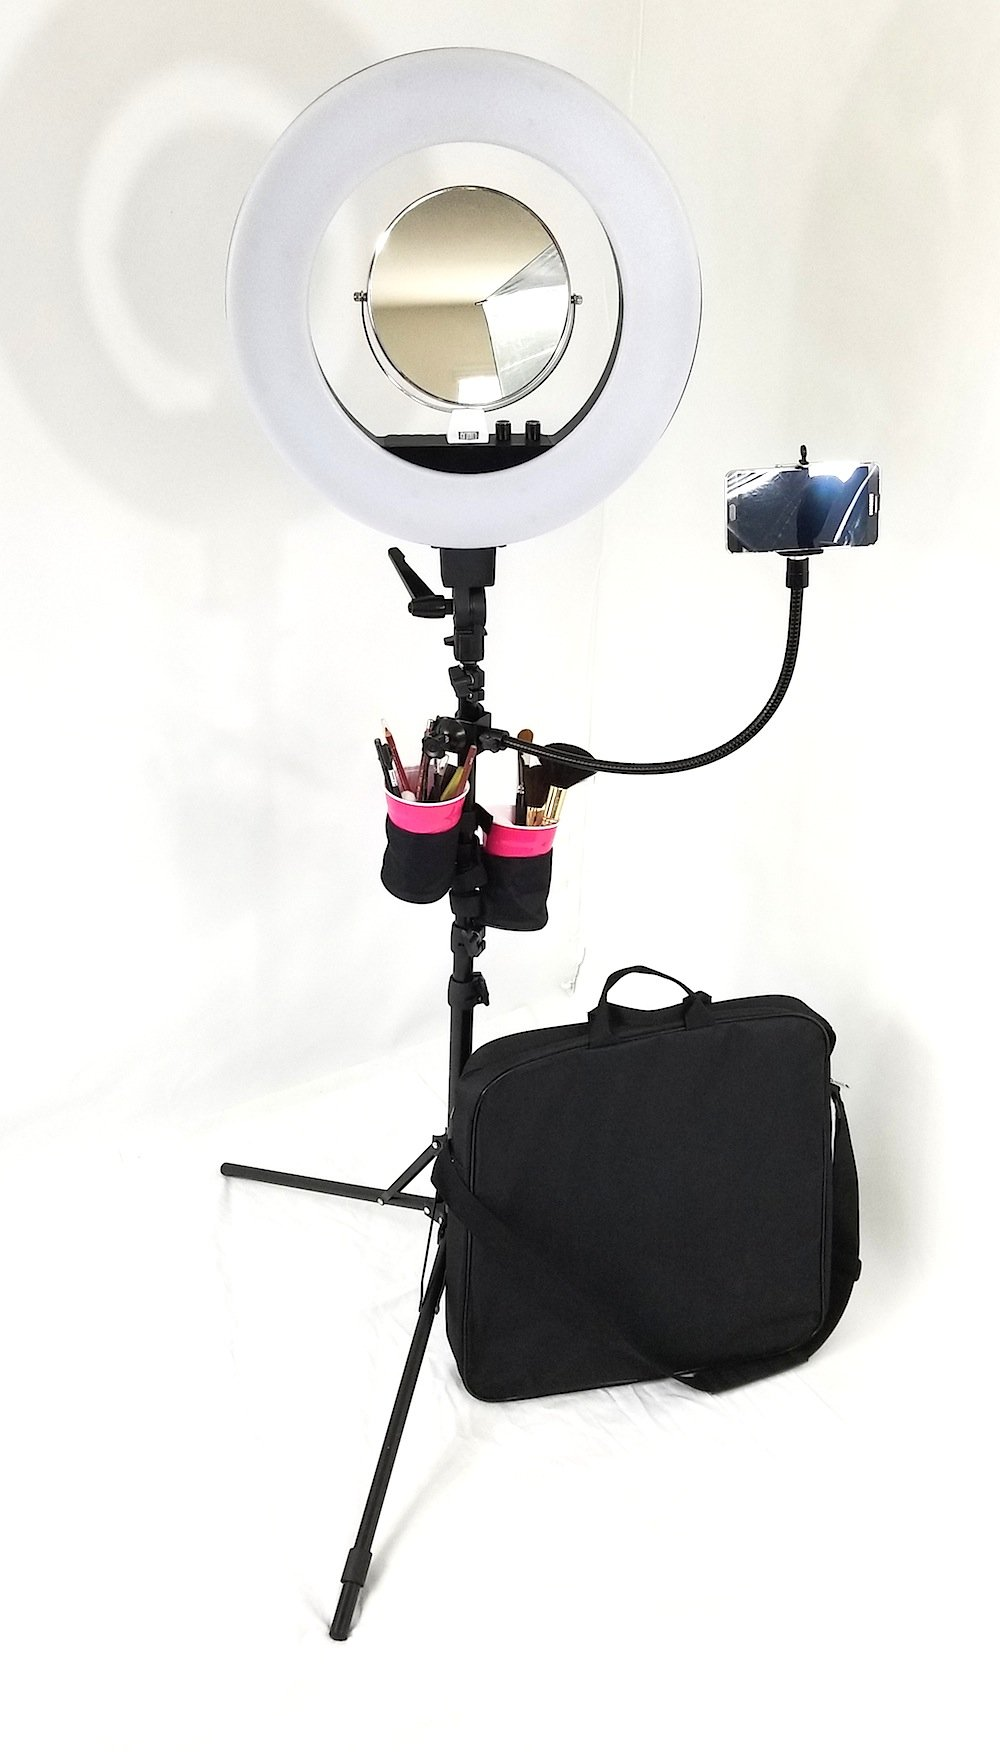 CHRISTMAS SPECIAL-----TuscanyPro 18″ LED Ring Light UNIQUE w/ Brush Holders, Cell Phone Holder & Mirror--480 DIMMABLE LED BULBS---BONUS GIFT WRAPPED AND A BONUS CELL PHONE HOLDER INCLUDED....